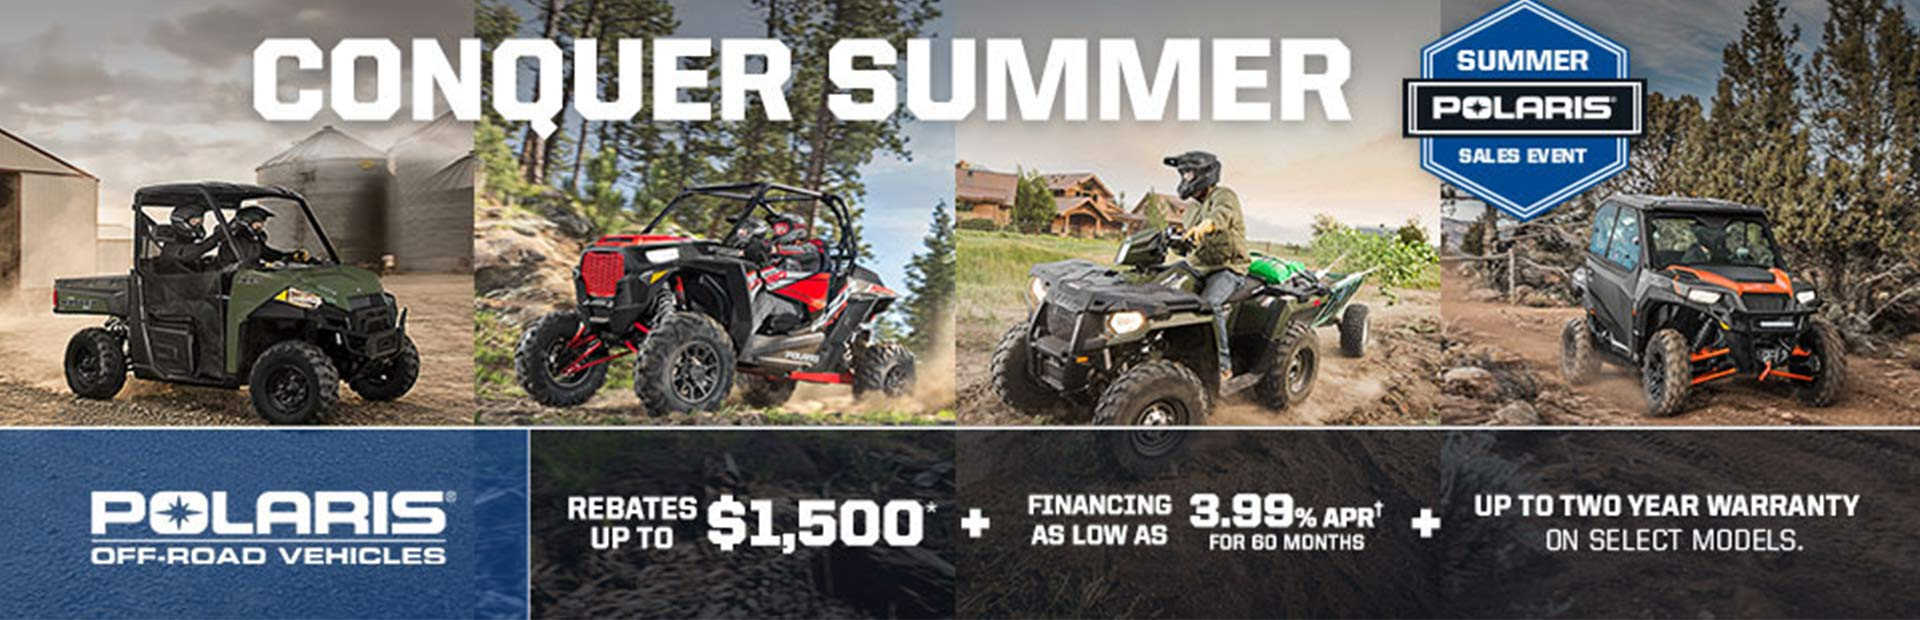 Polaris Industries: Polaris Summer Sales Event - Off-Road